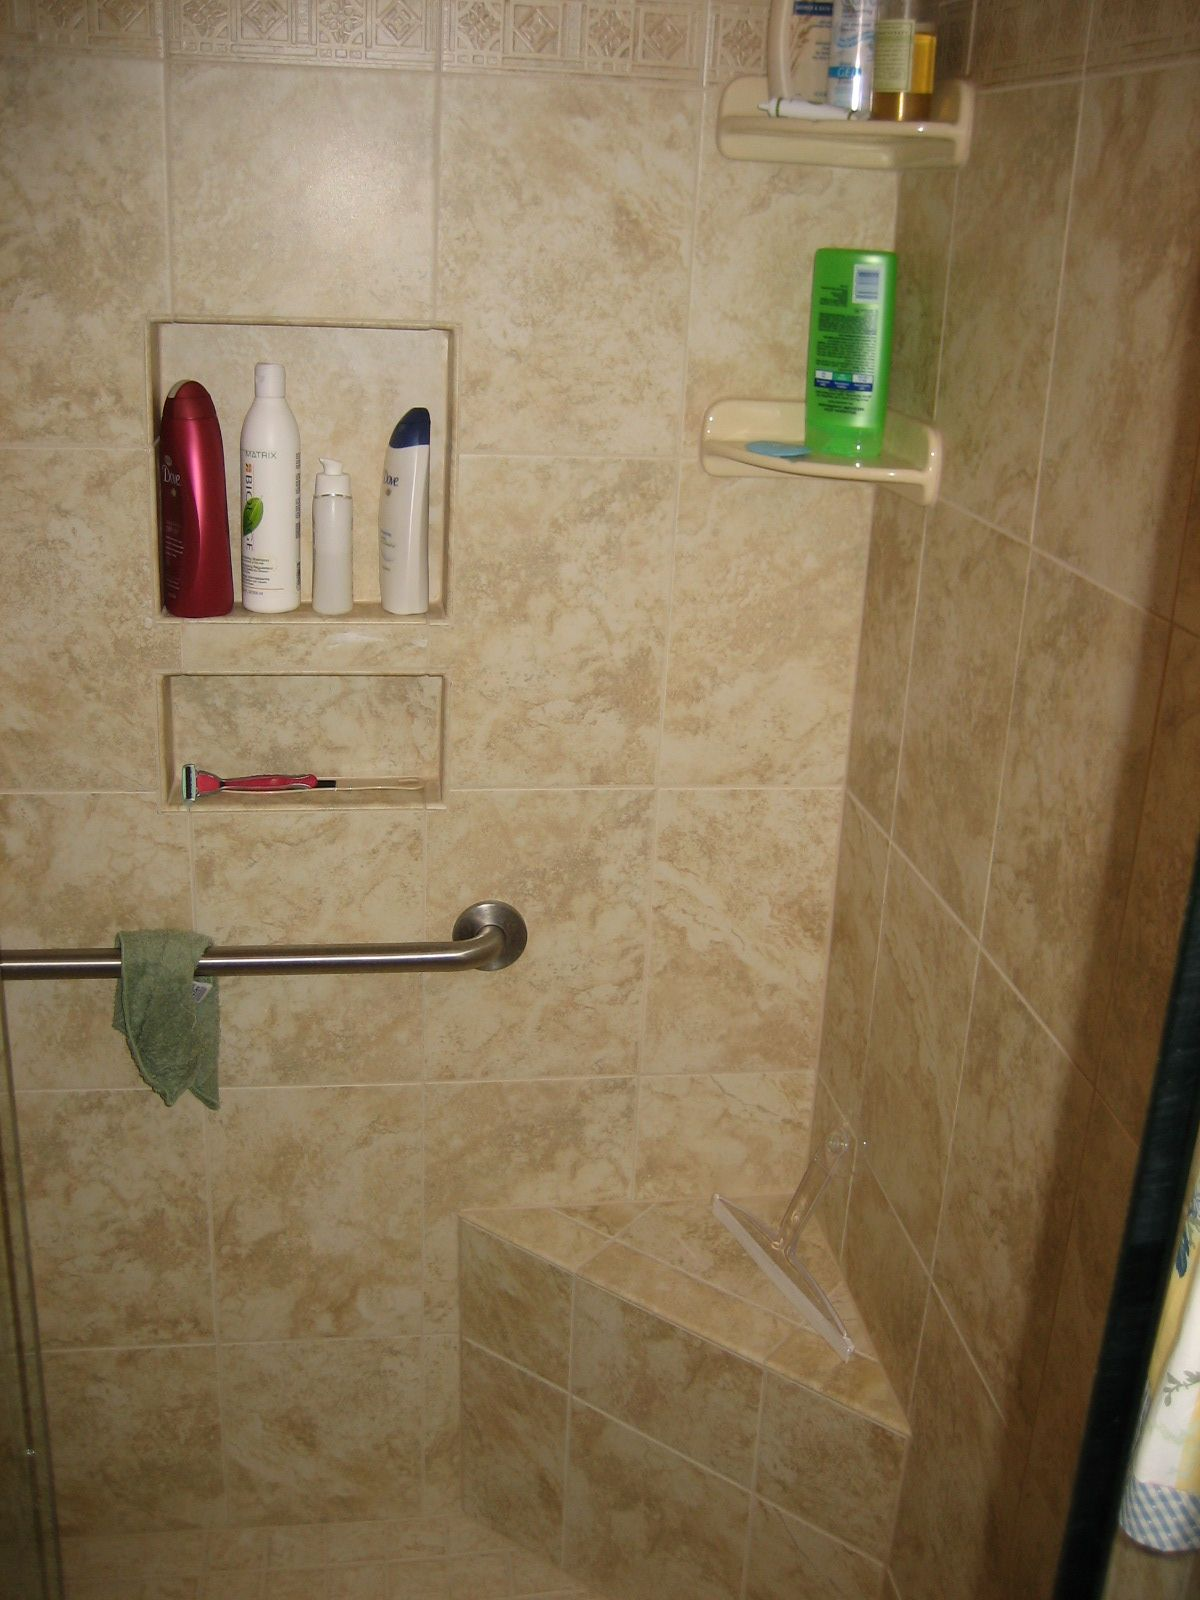 Custom Ceramic Shower Stall With Seat Pigeon Hole For Shampoos